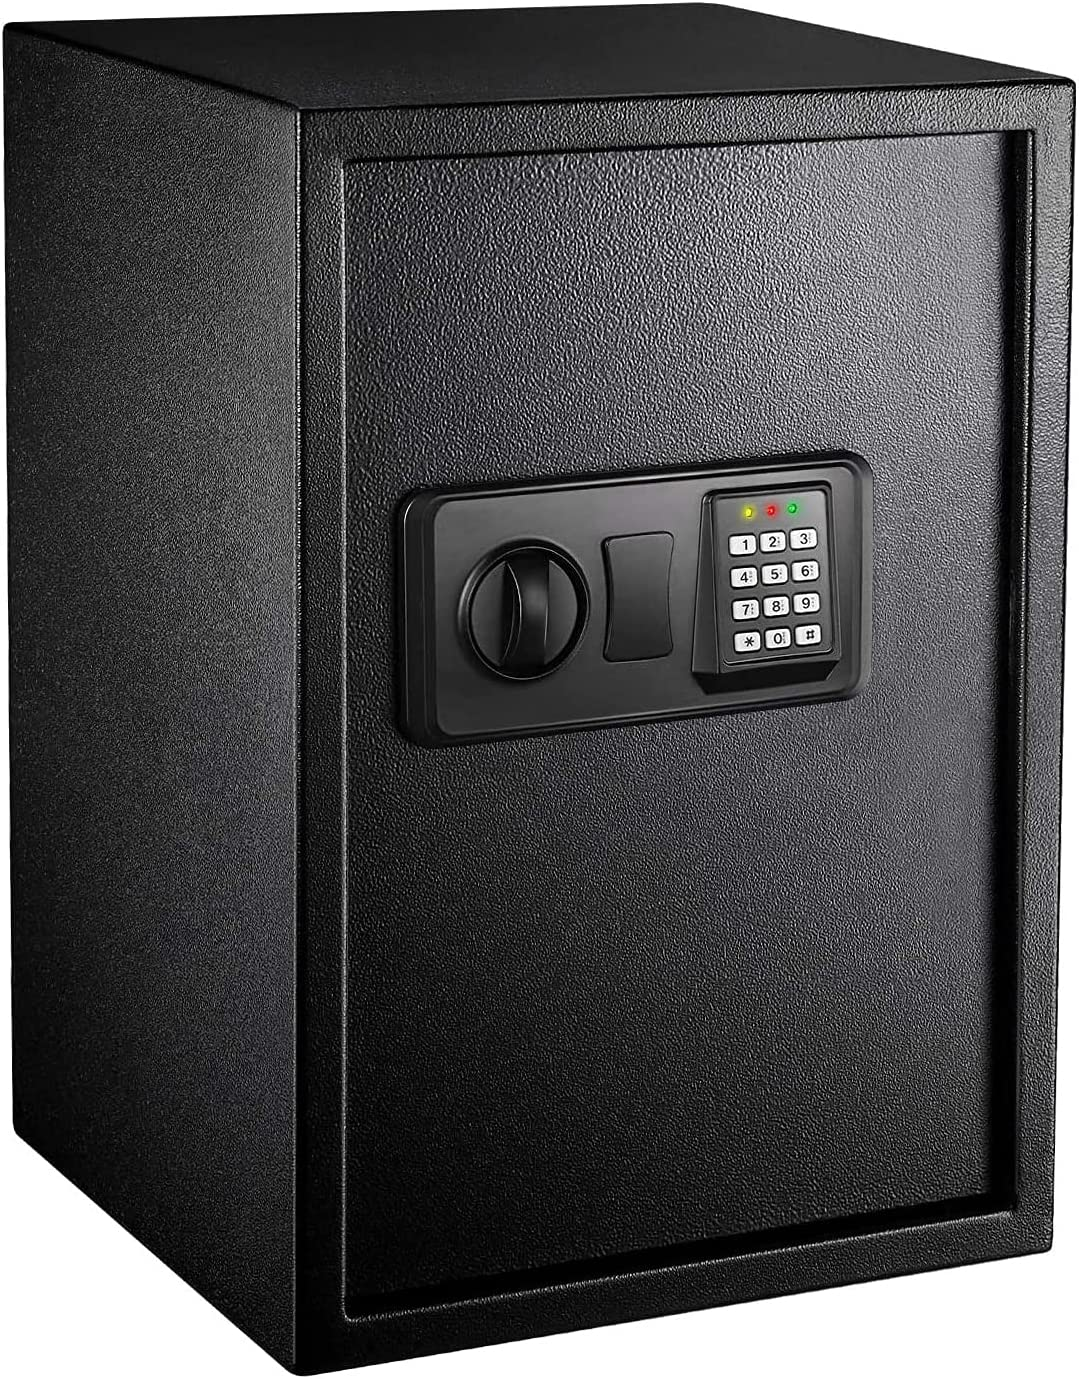 Safe Box 1.8 Cubic Feet Home Safe Digital Lock Box with Instruction Light for Money Safe Cash Jewelry Passport Documents Gun Security-50SA